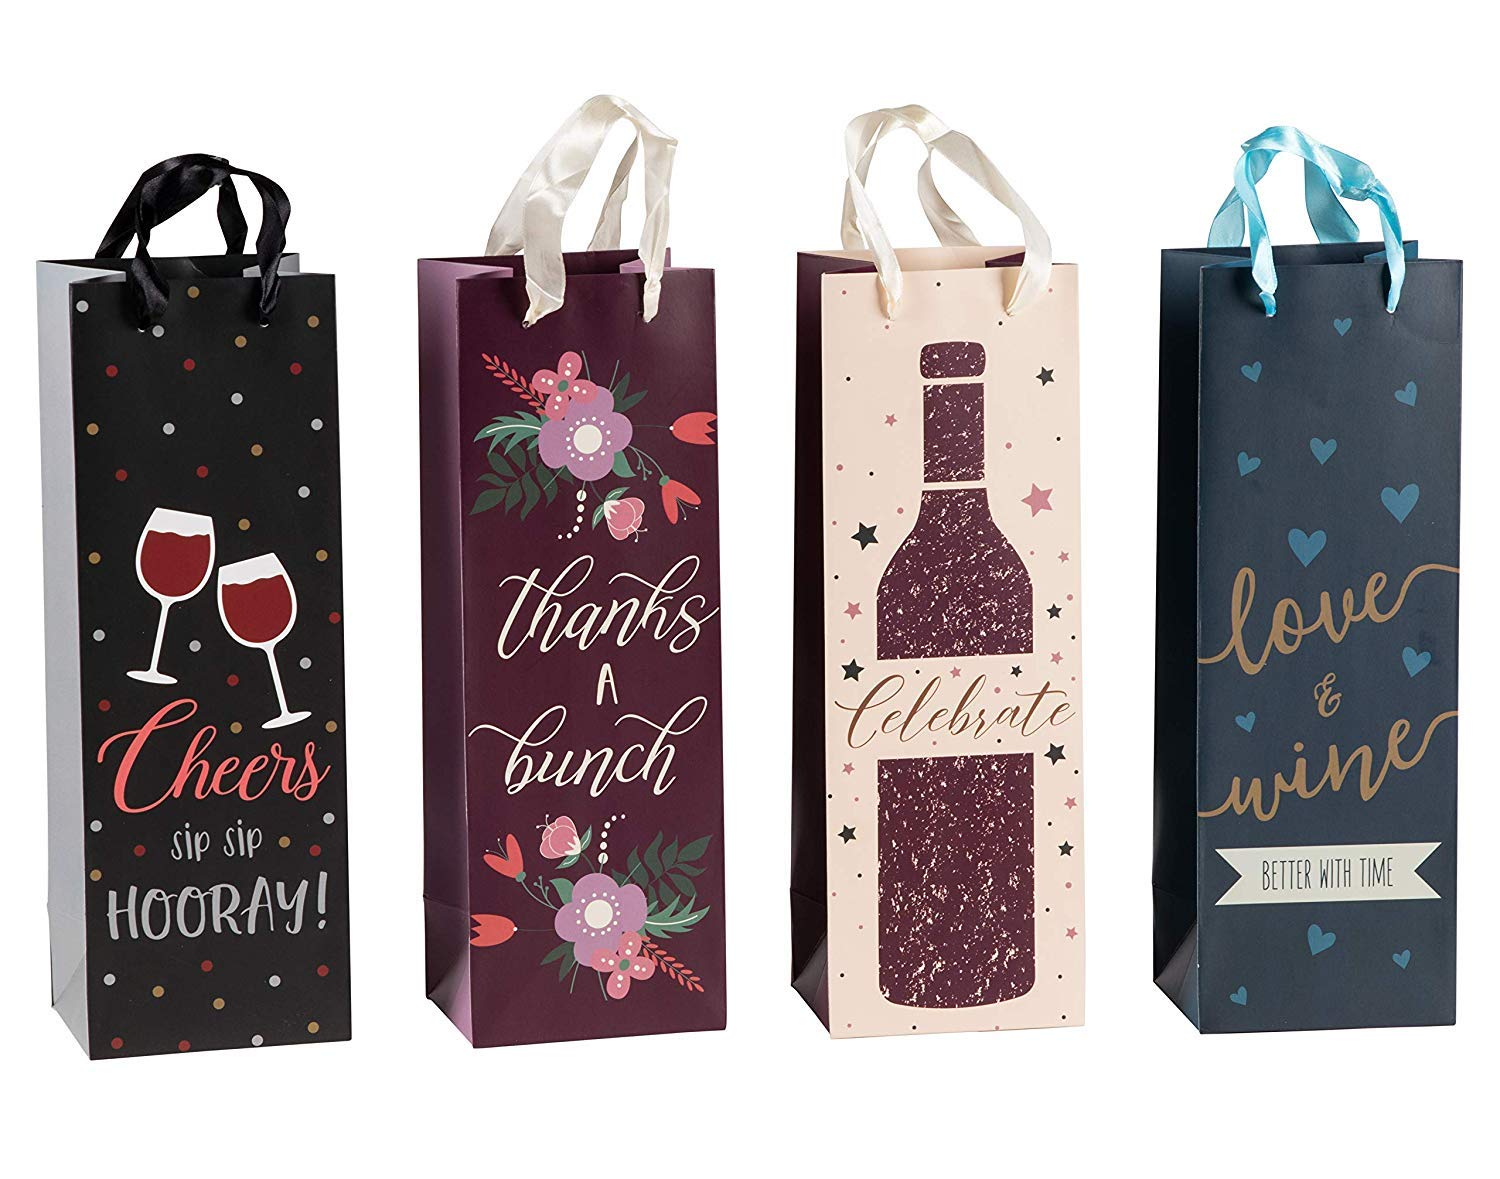 Wine Bags Bulk- 12-Pack Wine Gift Bags for Housewarming, Birthday, Anniversary, Wedding, Dinner Party,...